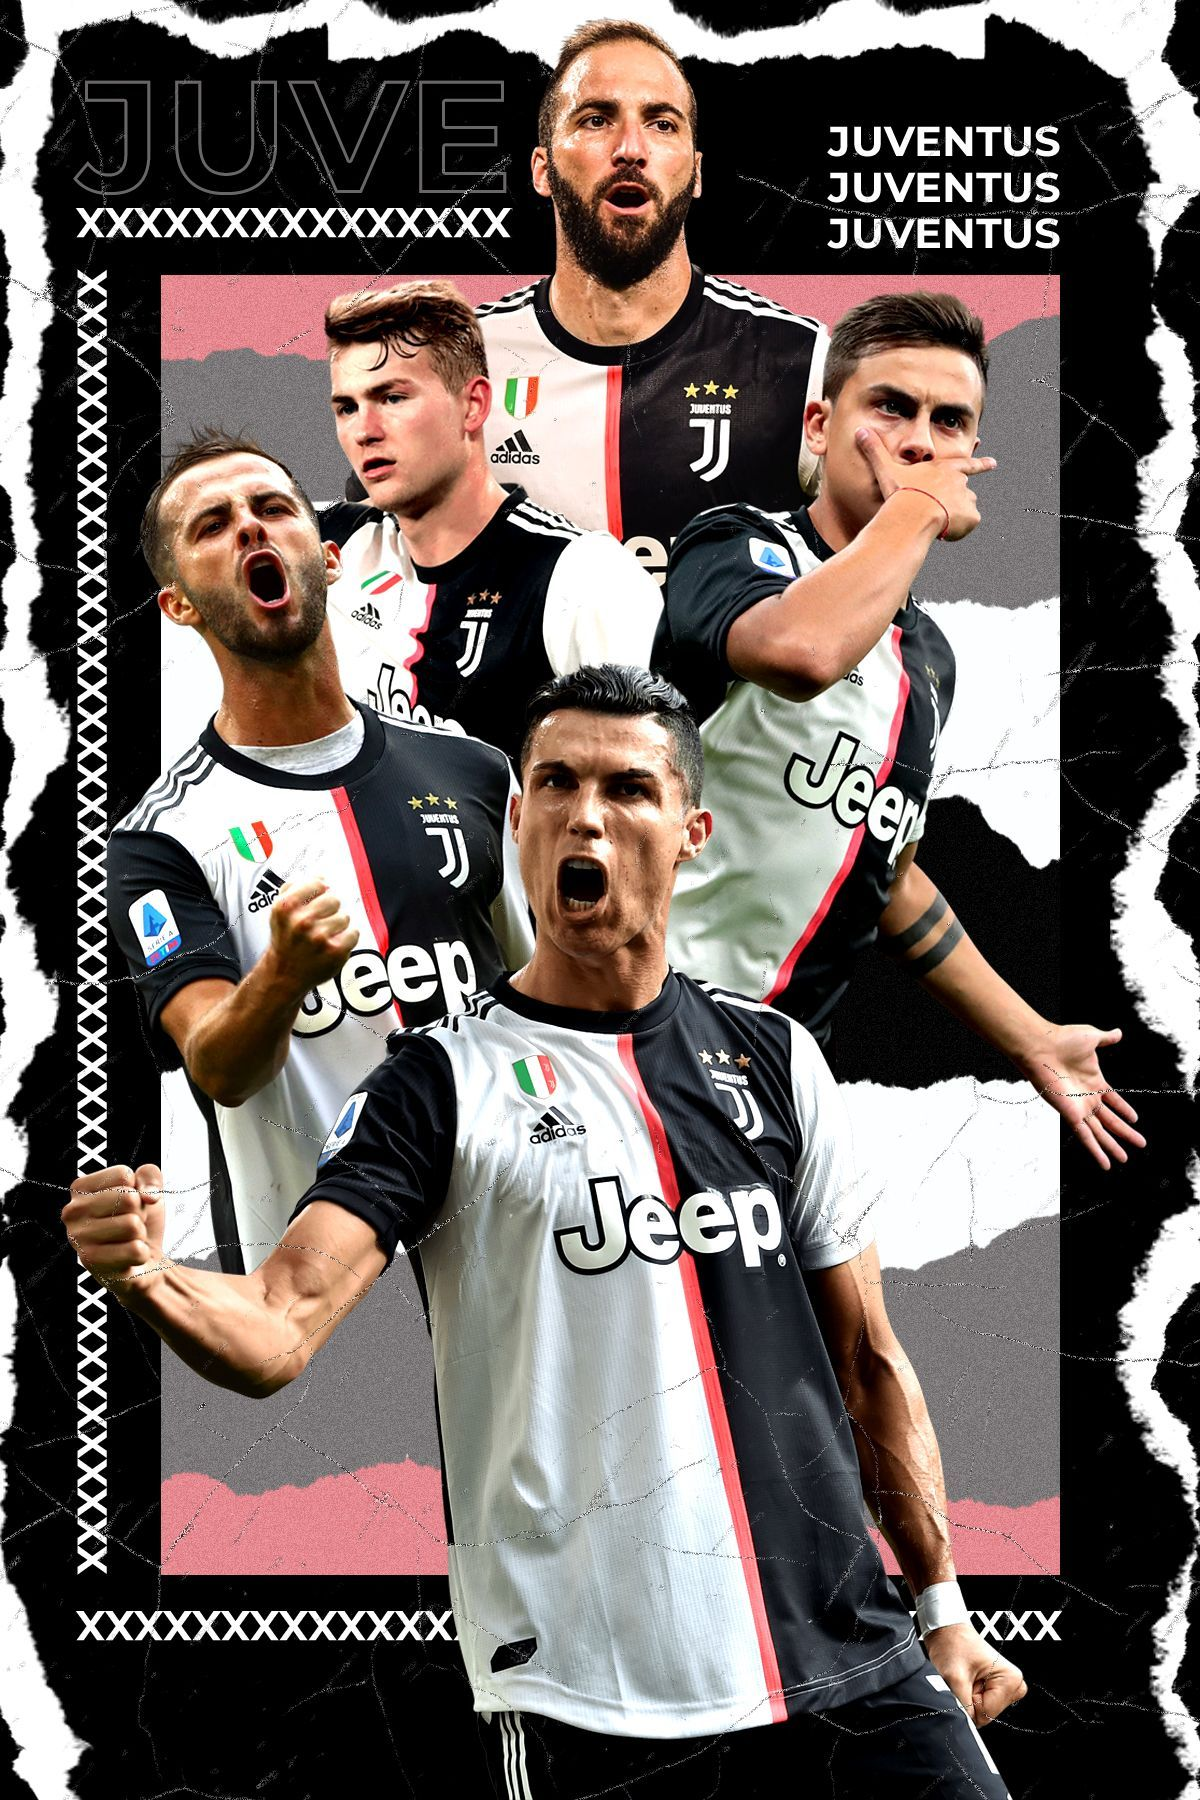 Juventus Serie A Champions 2020 Wallpapers Wallpaper Cave